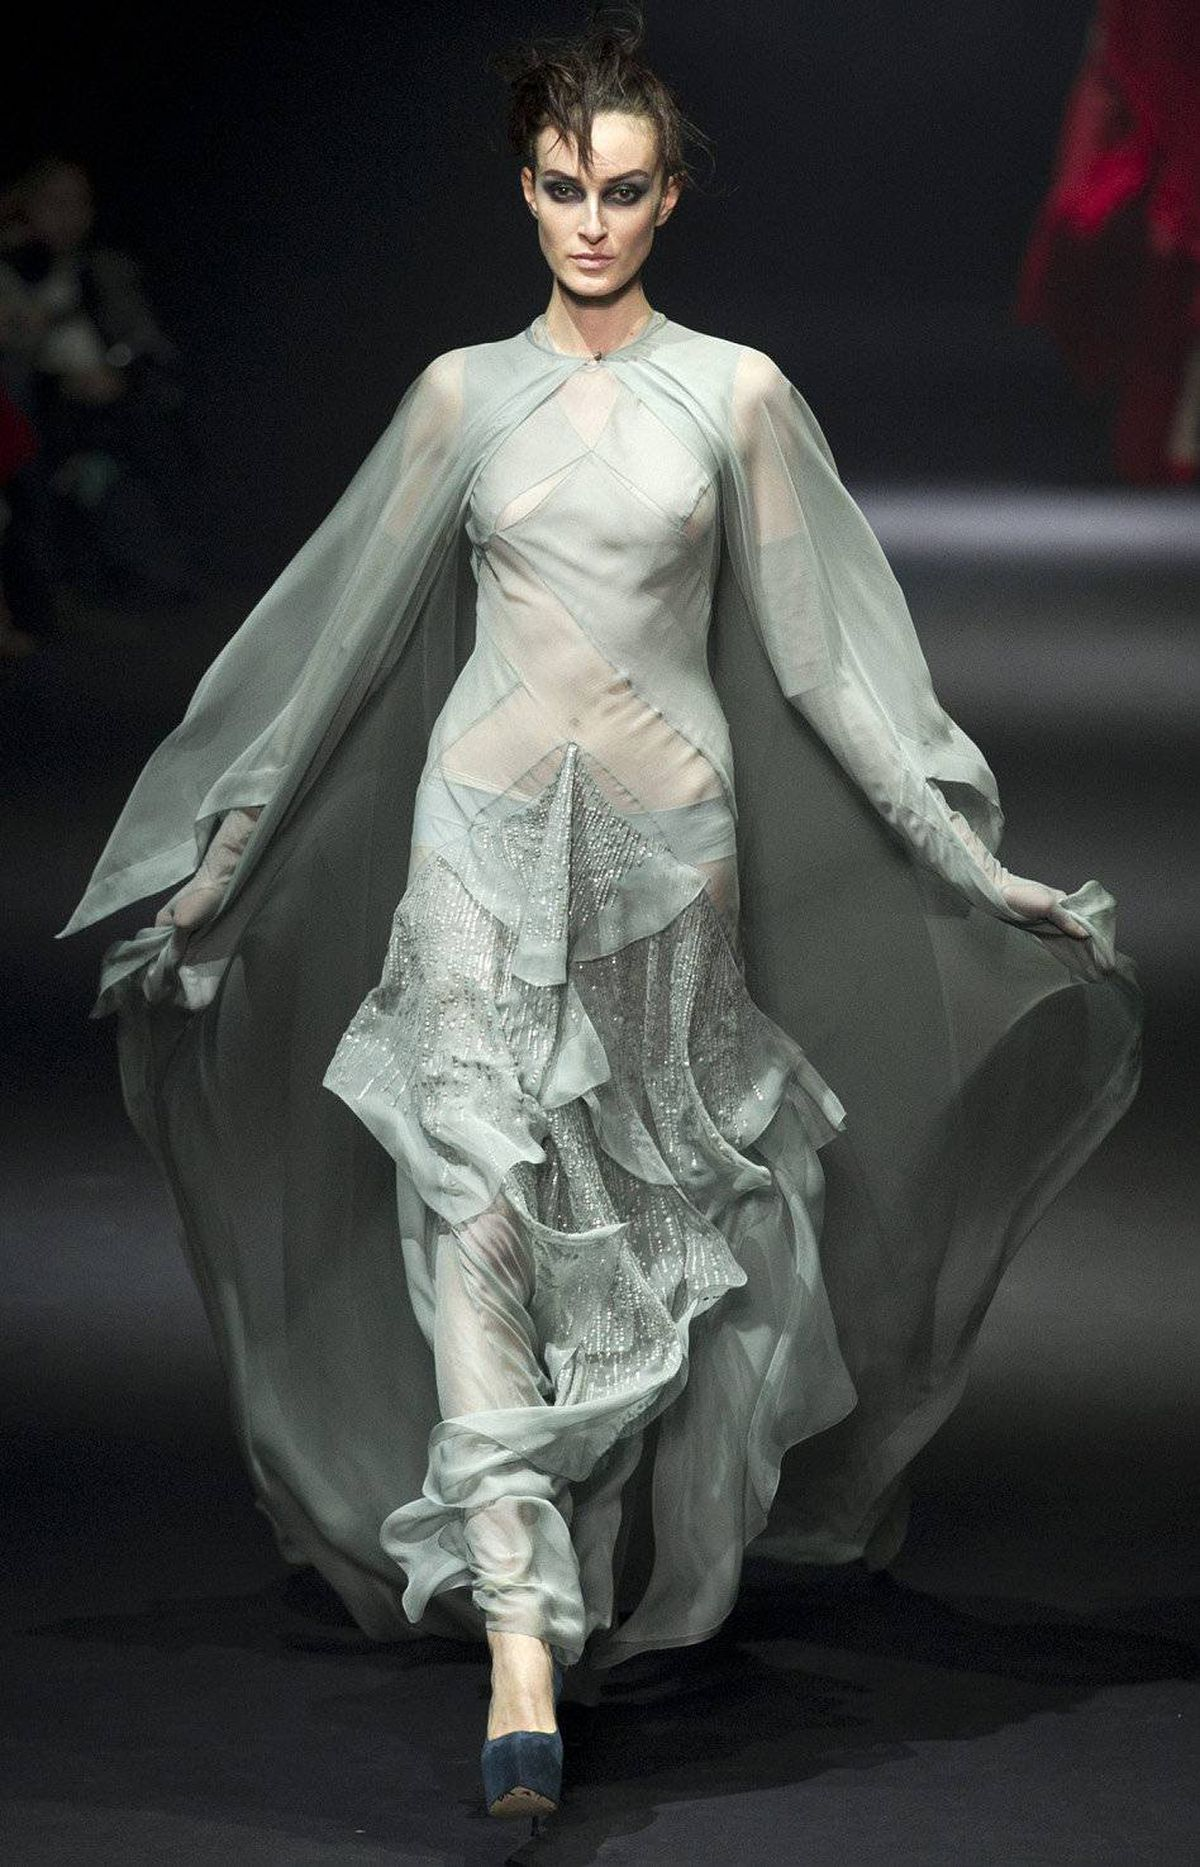 Gaytten continued the Galliano tradition of barely there diaphanous gowns cut on the bias. His additional flourishes: diamond panelling and billowing capes.